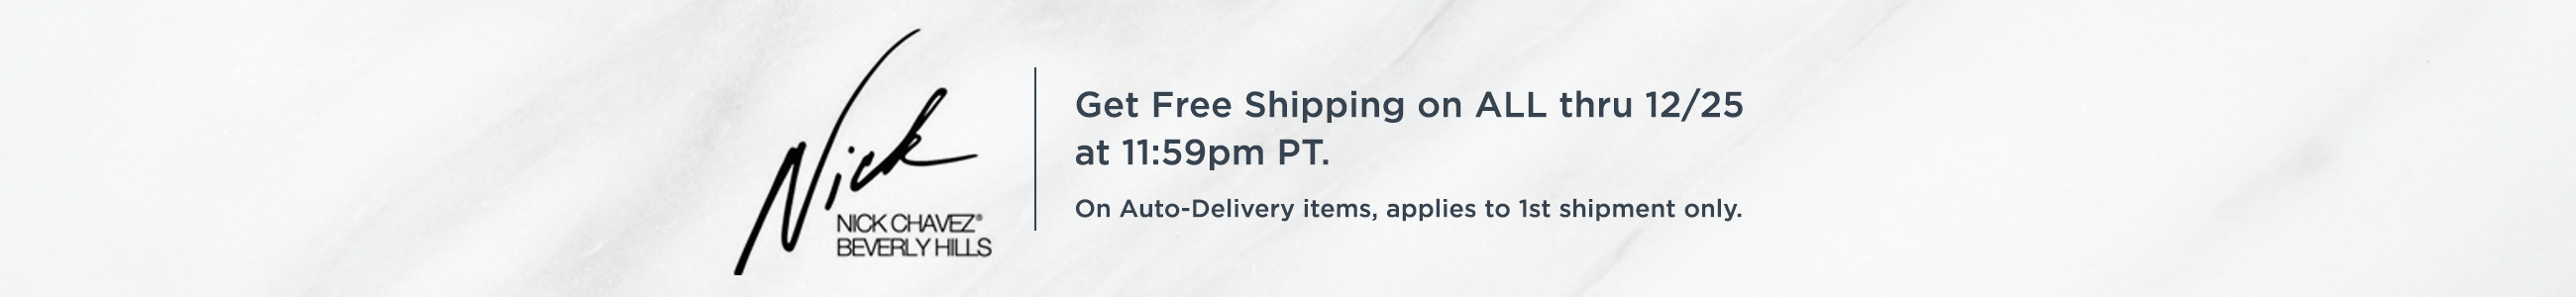 Nick Chavez - Get Free Shipping on ALL thru 12/25 at 11:59pm PT. On Auto-Delivery items, applies to 1st shipment only.